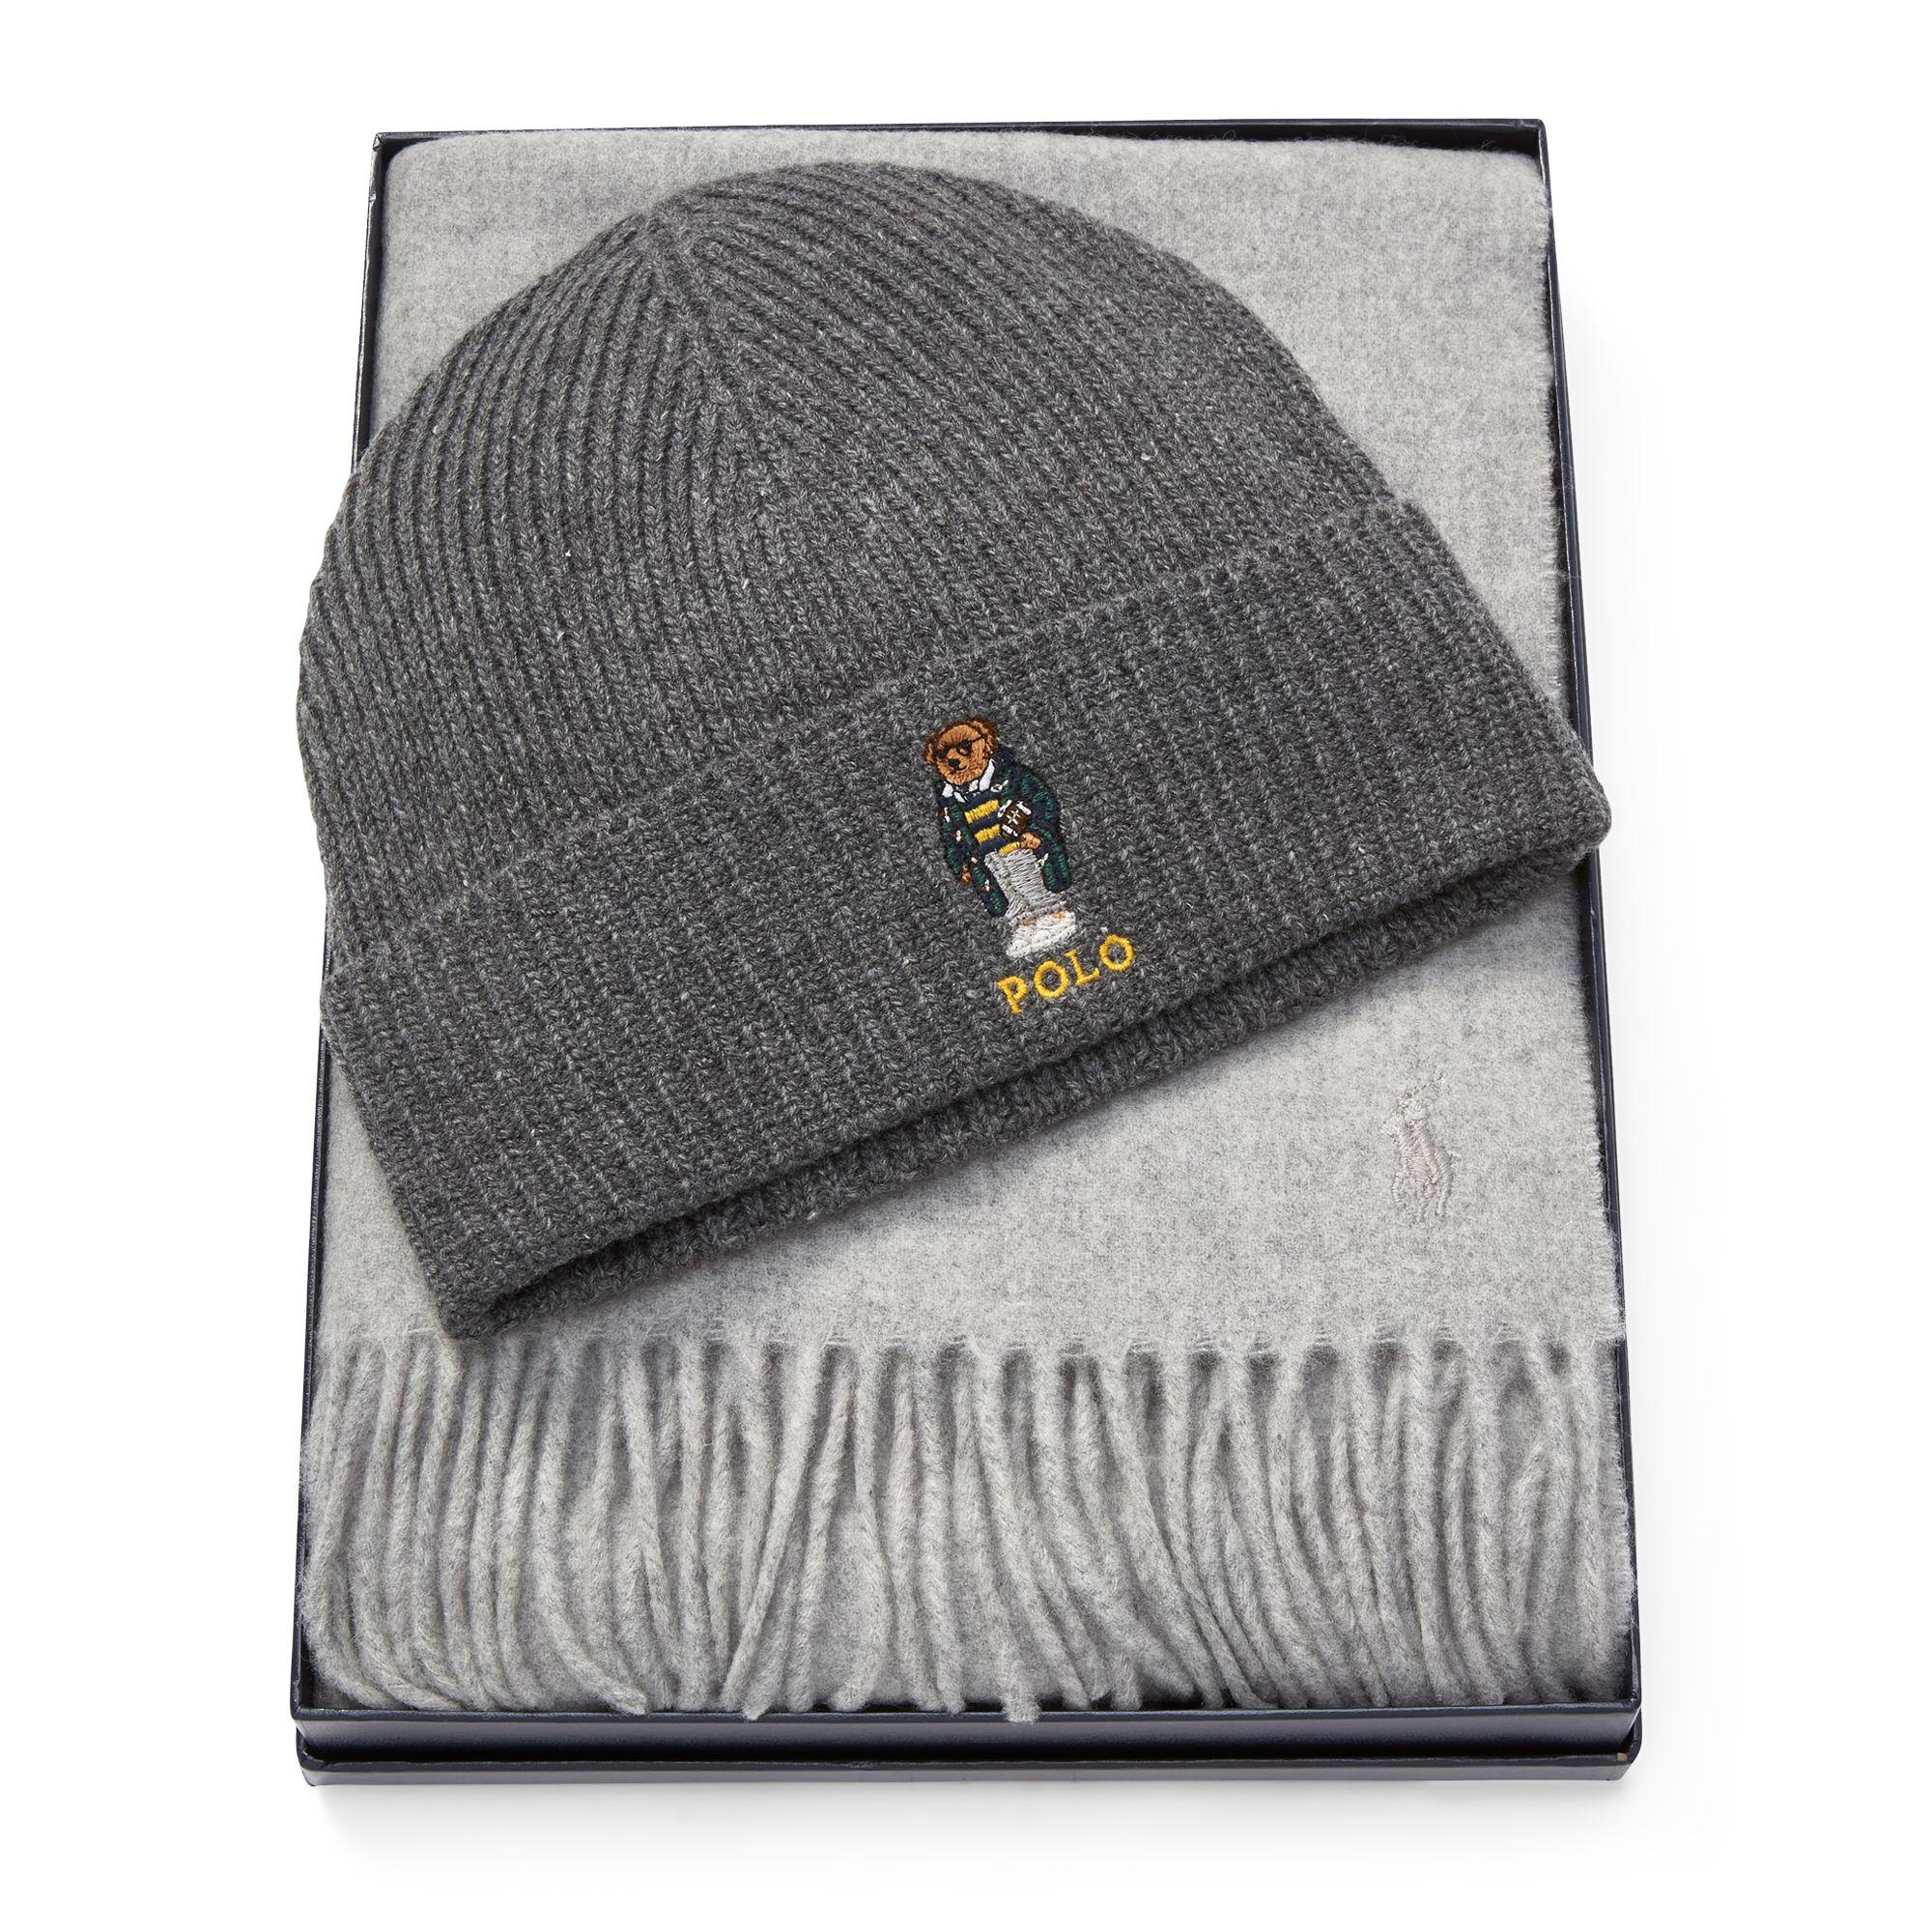 Lyst - Polo Ralph Lauren Polo Bear Hat   Scarf in Brown for Men c57e4b44ded5